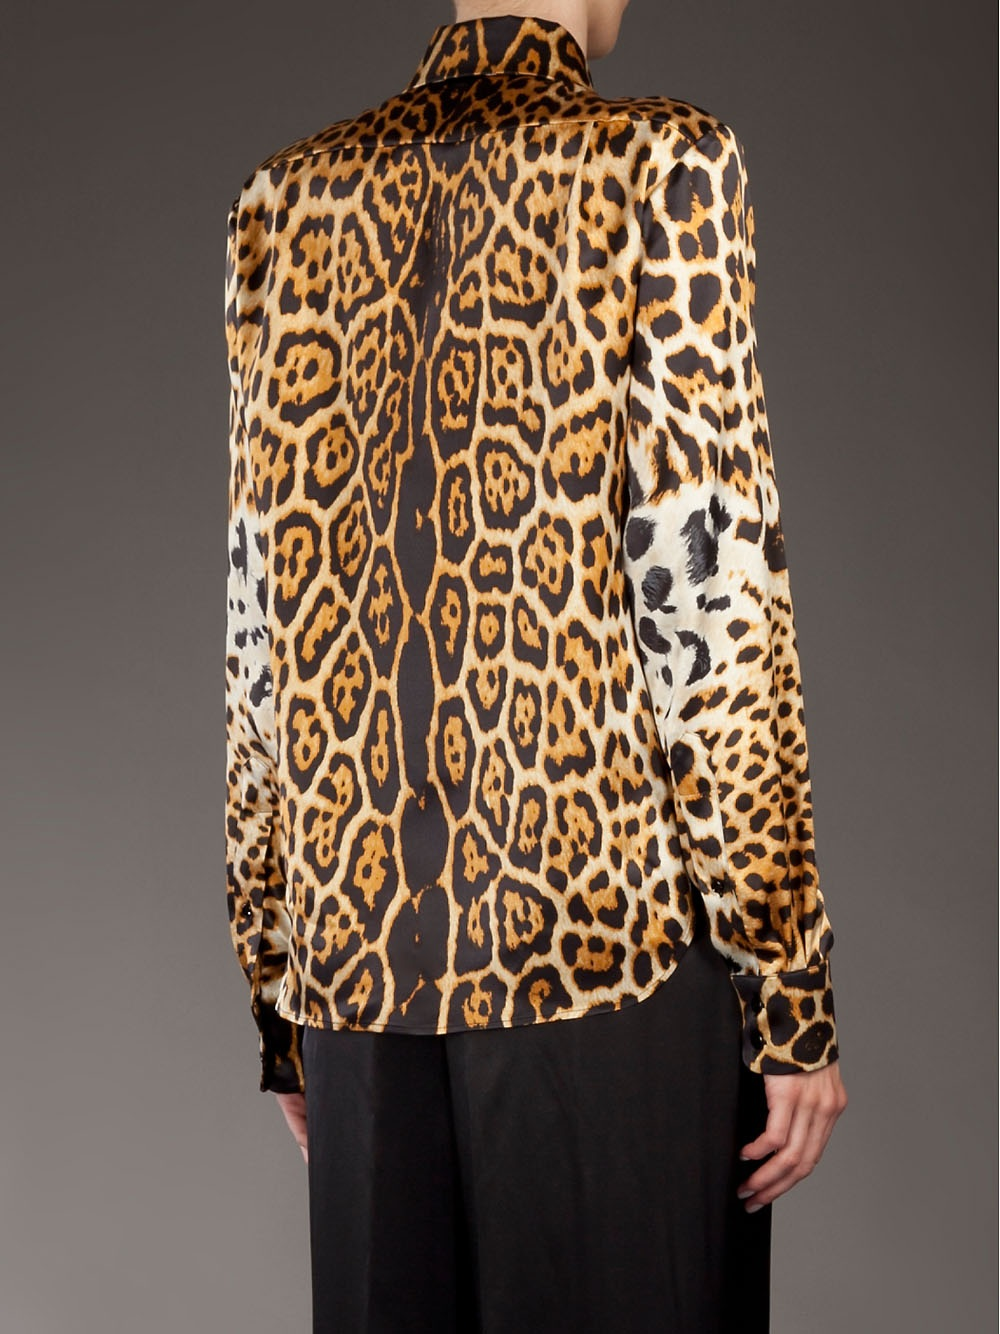 Leopard Shirts For Women